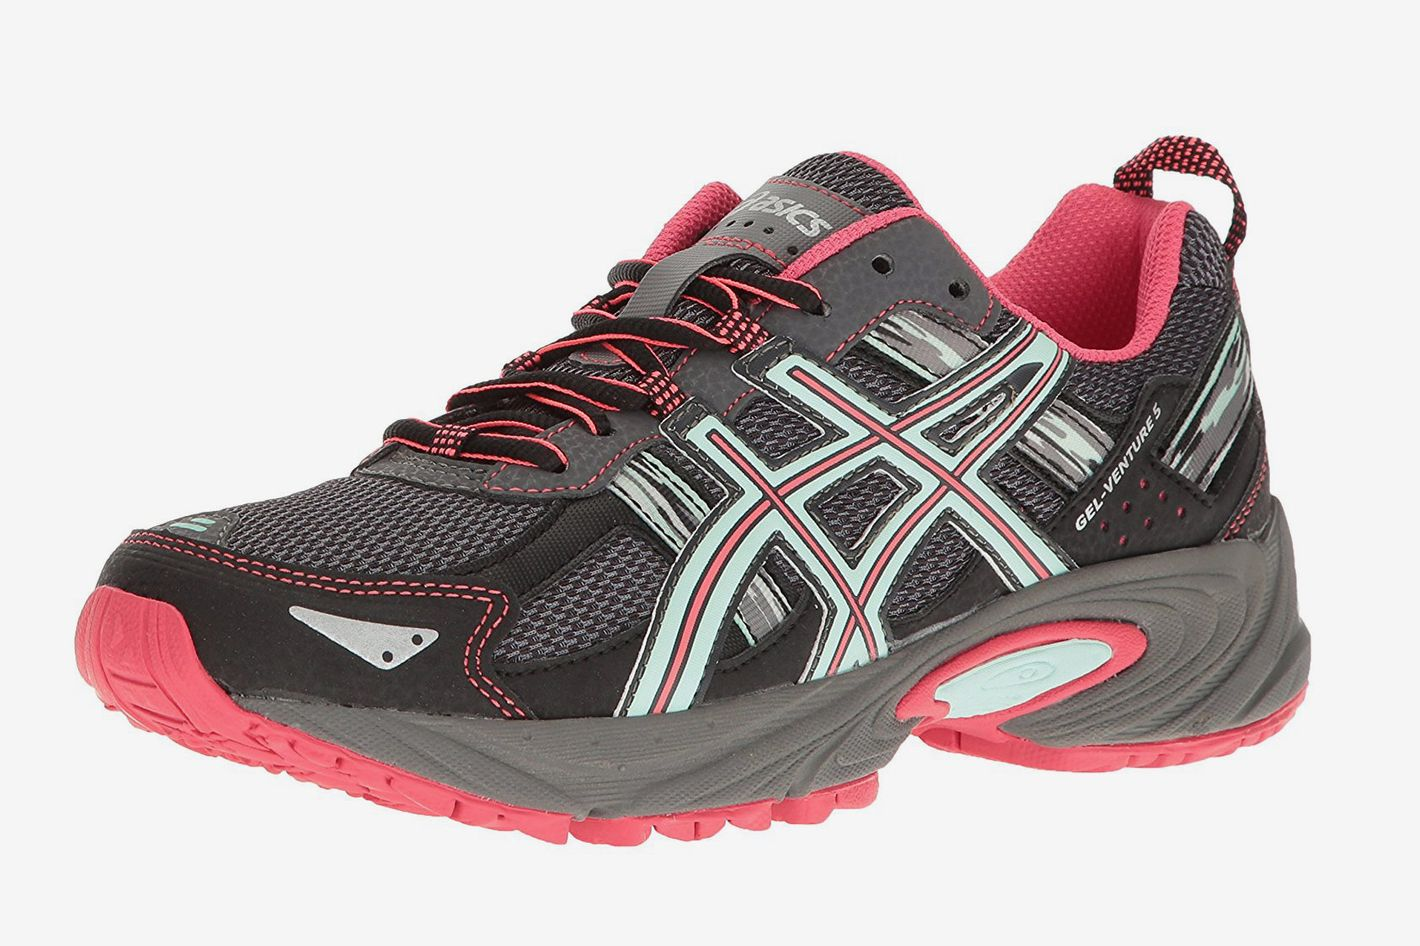 7e9dec592bf45 The Best Running Shoes of 2018